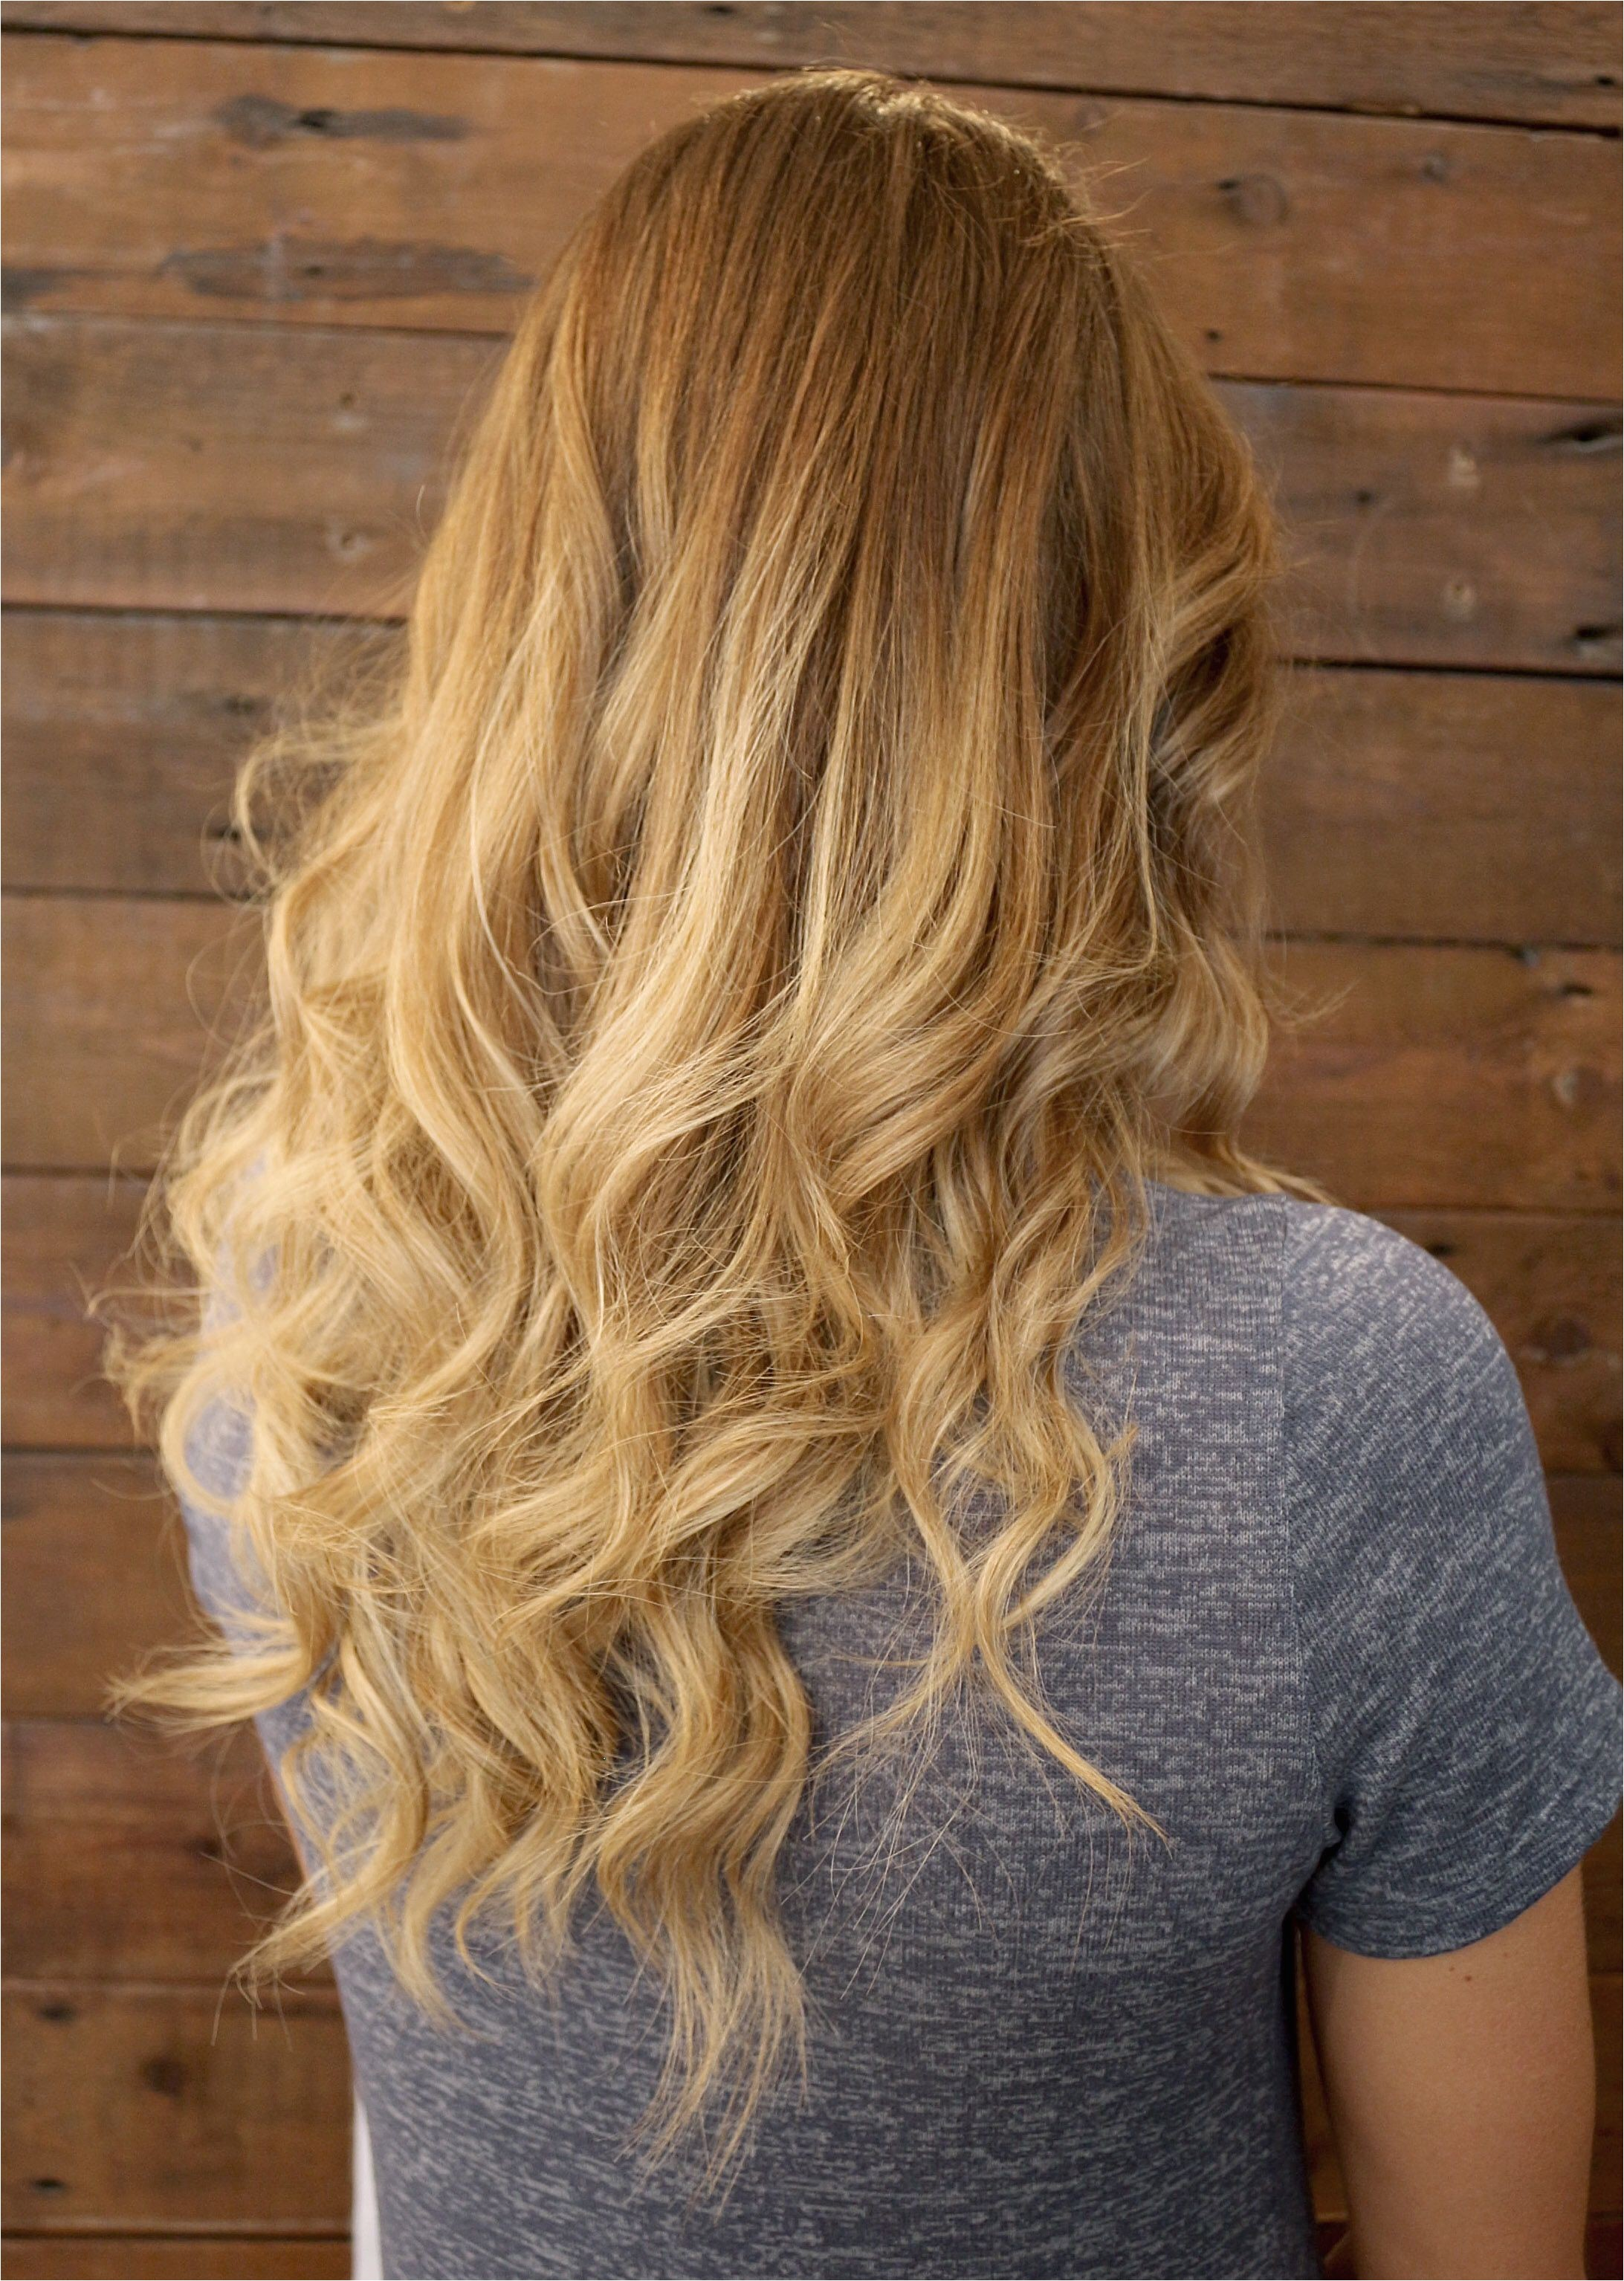 curly blow dry hairstyles